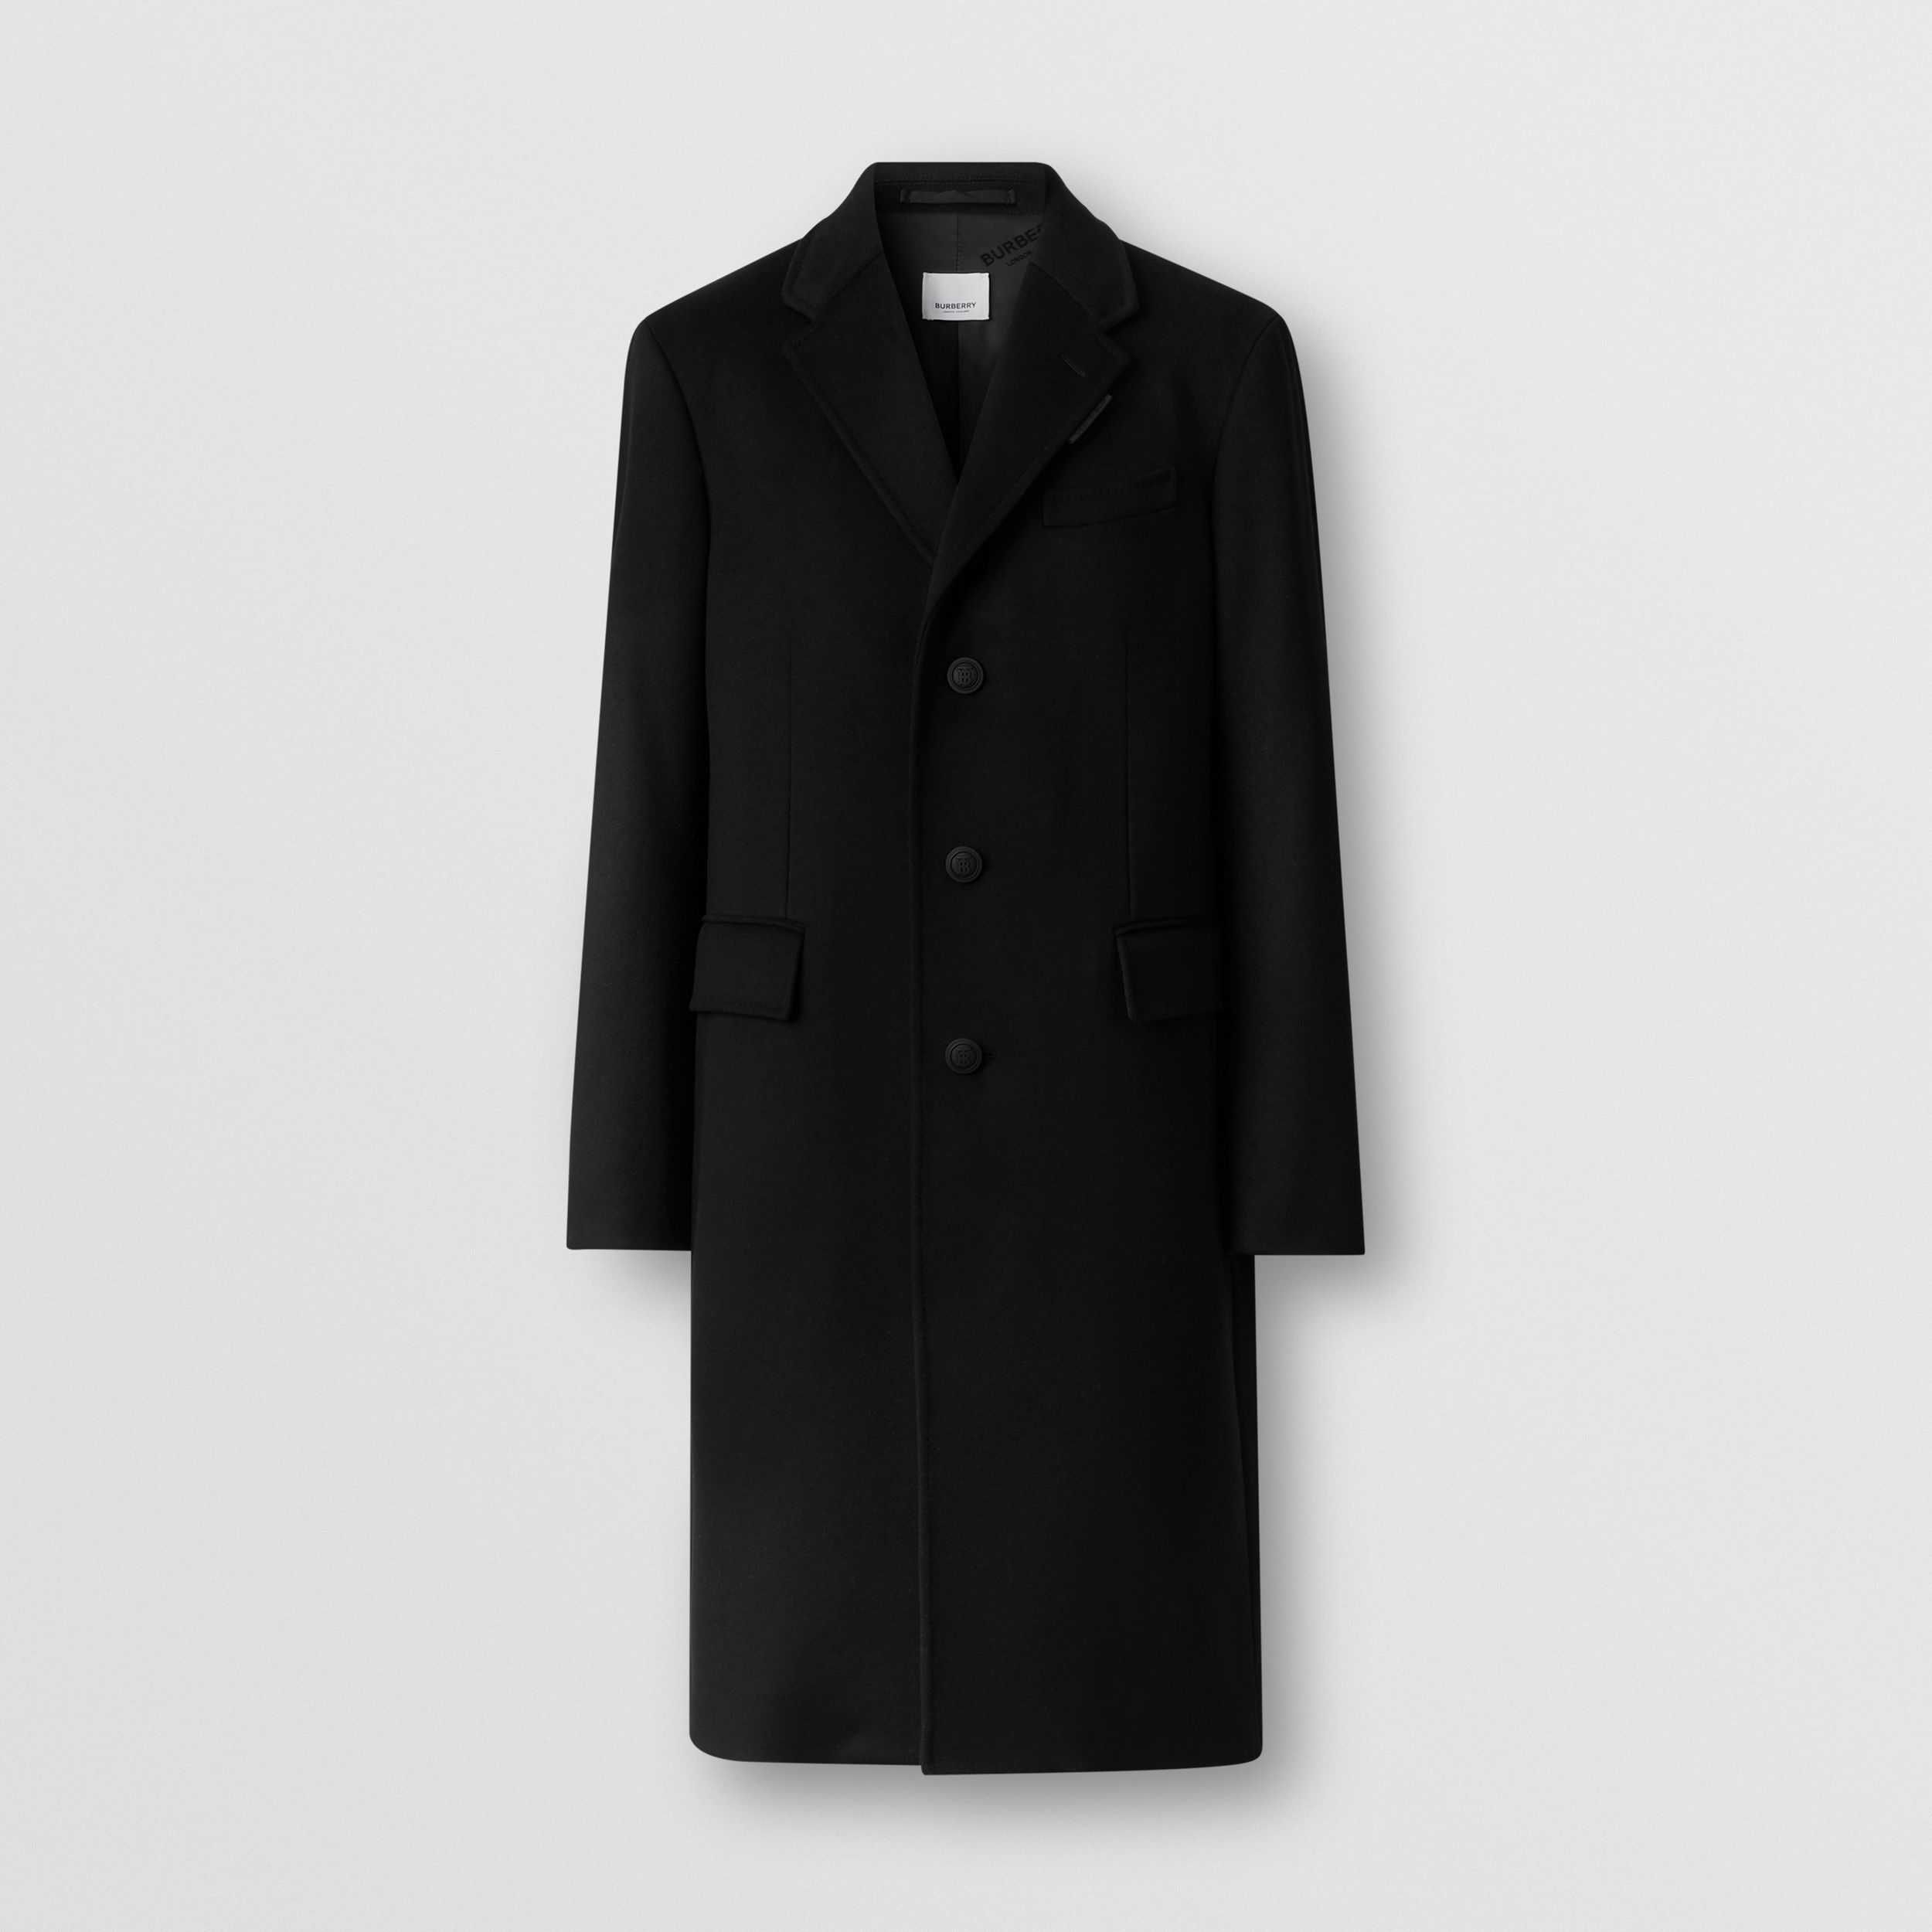 Button Detail Wool Cashmere Tailored Coat in Black - Men | Burberry United States - 4